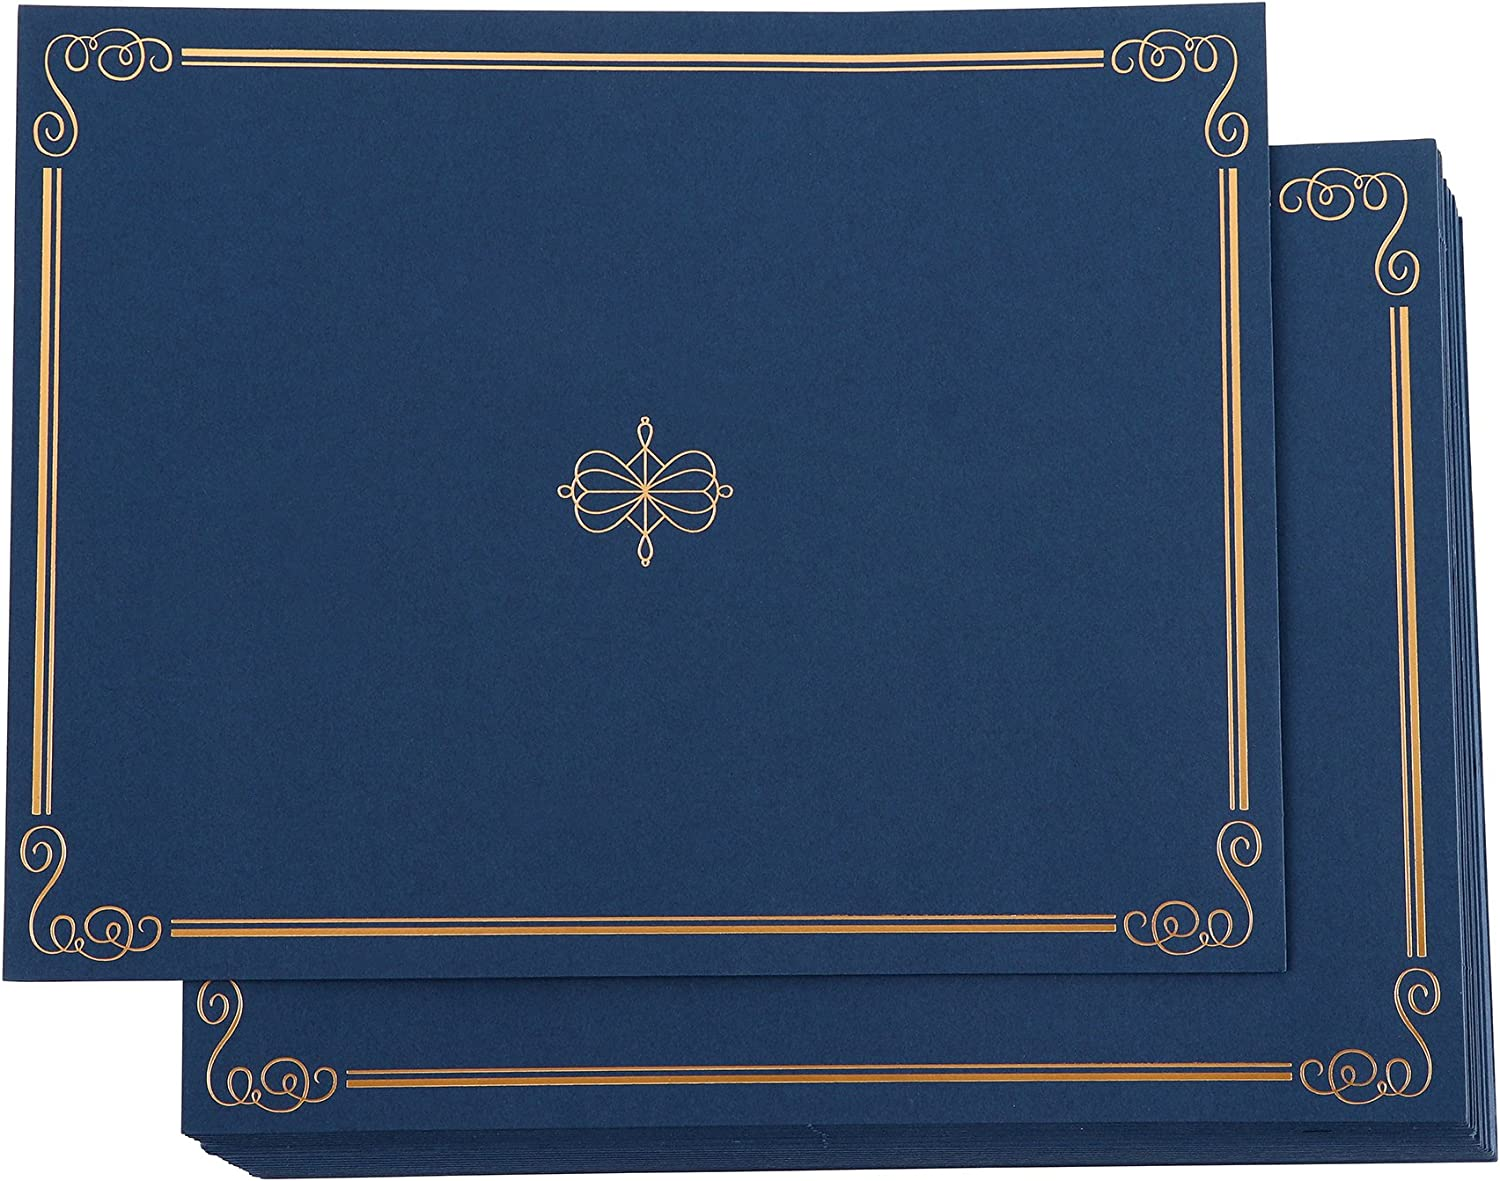 24 Pack Certificate Holders, Diploma and Document Cover with Gold Foil Border, Holds 11 x 8.5 Inches Letter Sized Awards, Navy Blue: Home & Kitchen